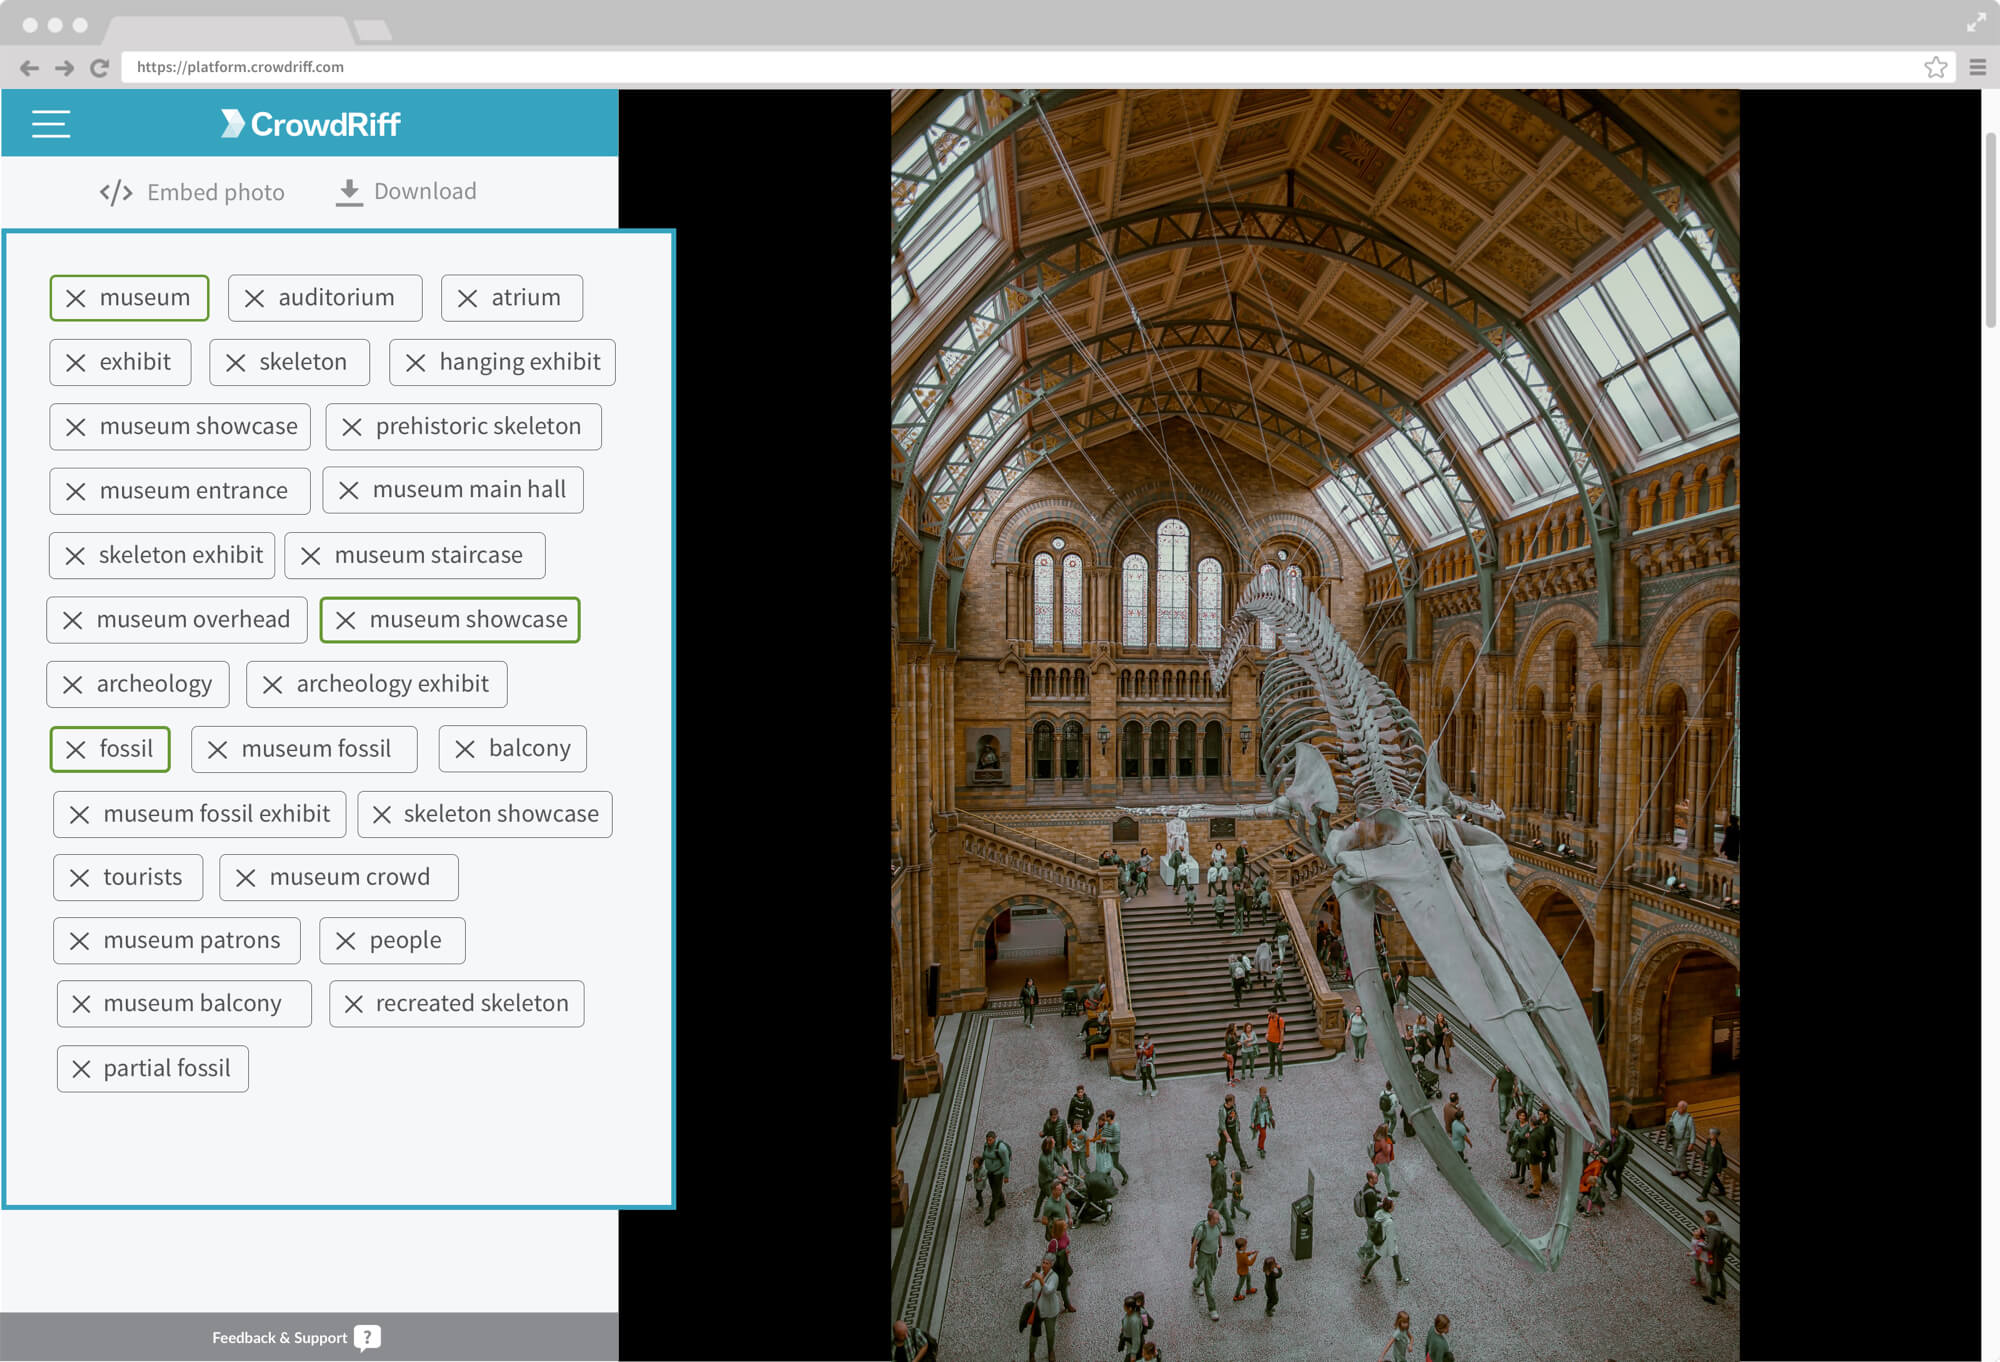 Auto key-wording of image of museum exhibit